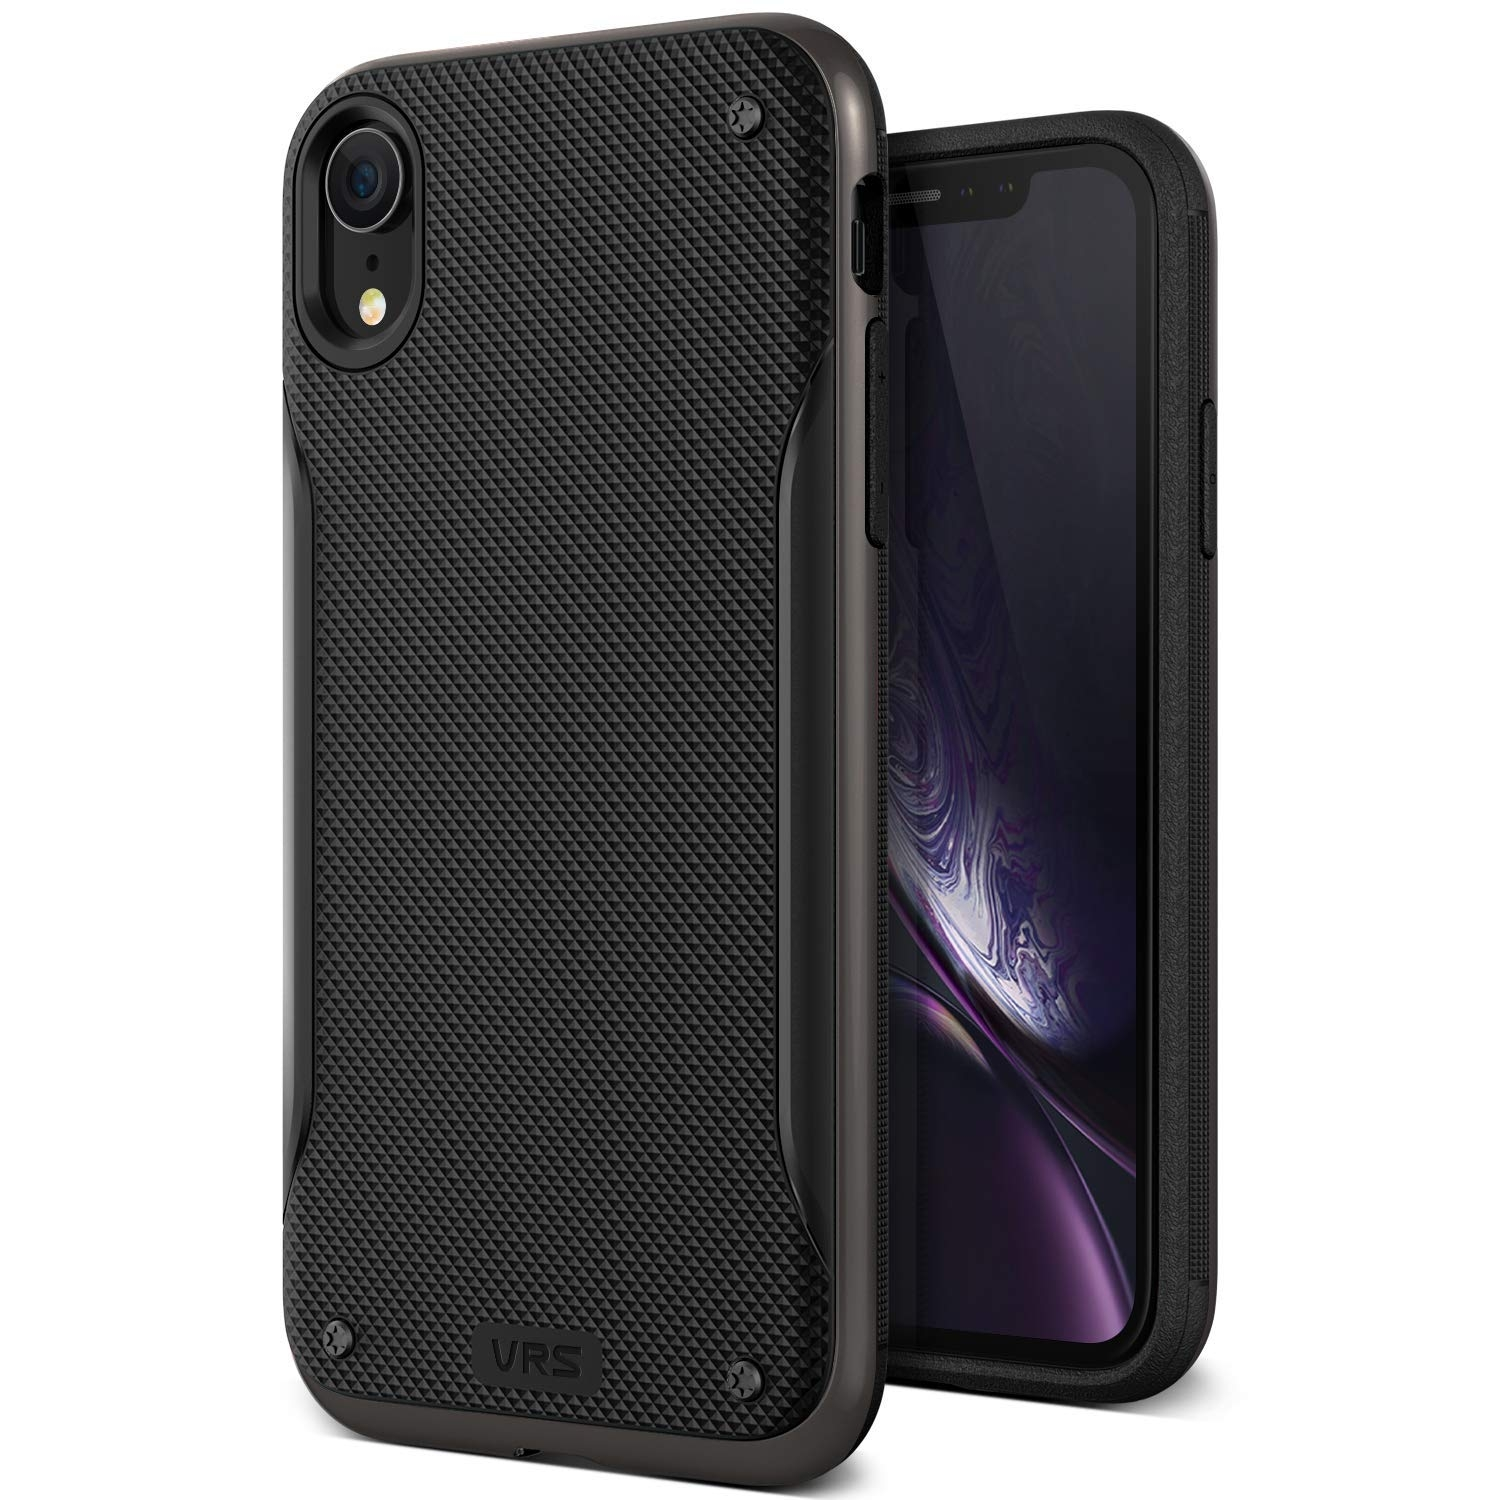 VRS Design Θήκη High Pro Shield iPhone XR - Black (VRS-IPXR-HPS-MBK)